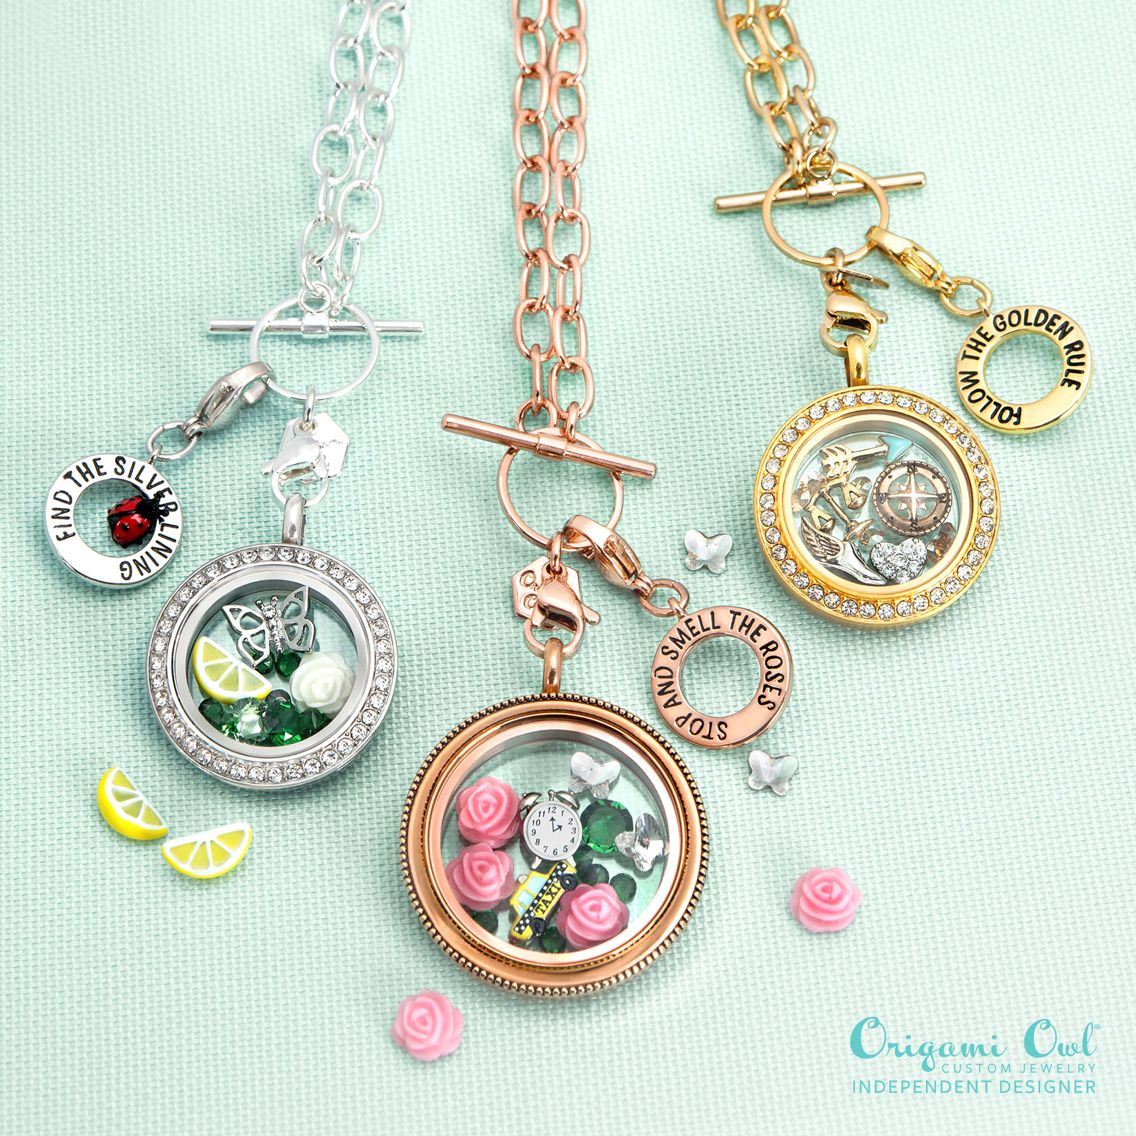 Origami owl spring collection 2016 Shop at www ... - photo#42